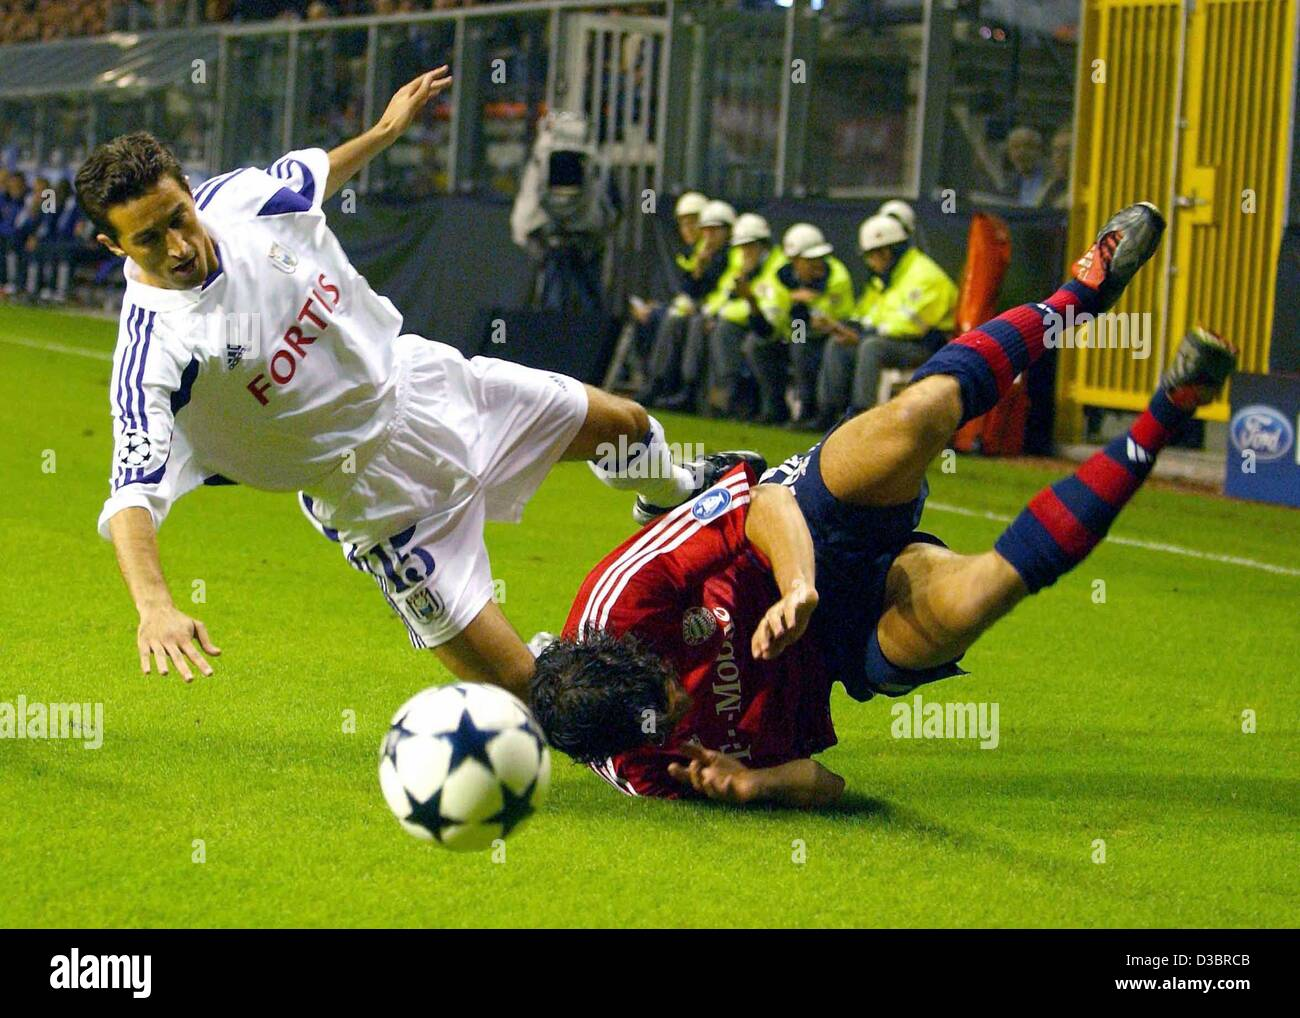 (dpa) - Munich's midfielder Michael Ballack (R) falls to the ground as he struggles with Anderlecht's Albanian - Stock Image